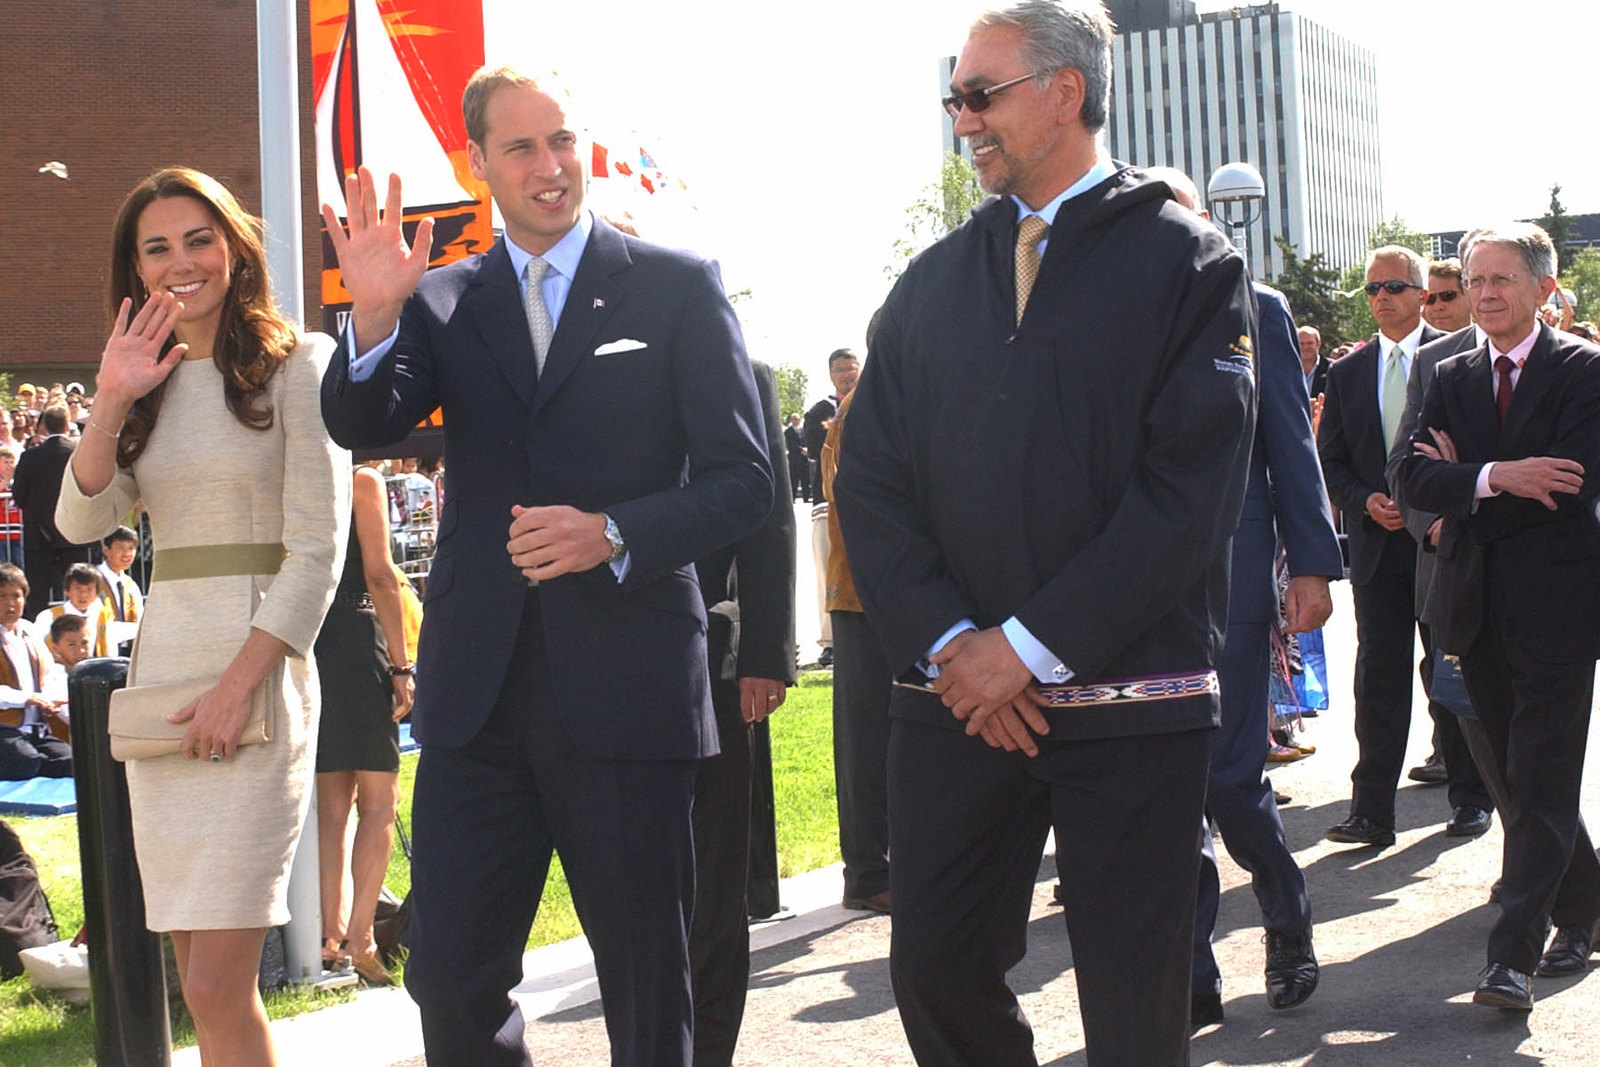 The Duke and Duchess of Cambridge in Yellowknife during Canada tour 2011